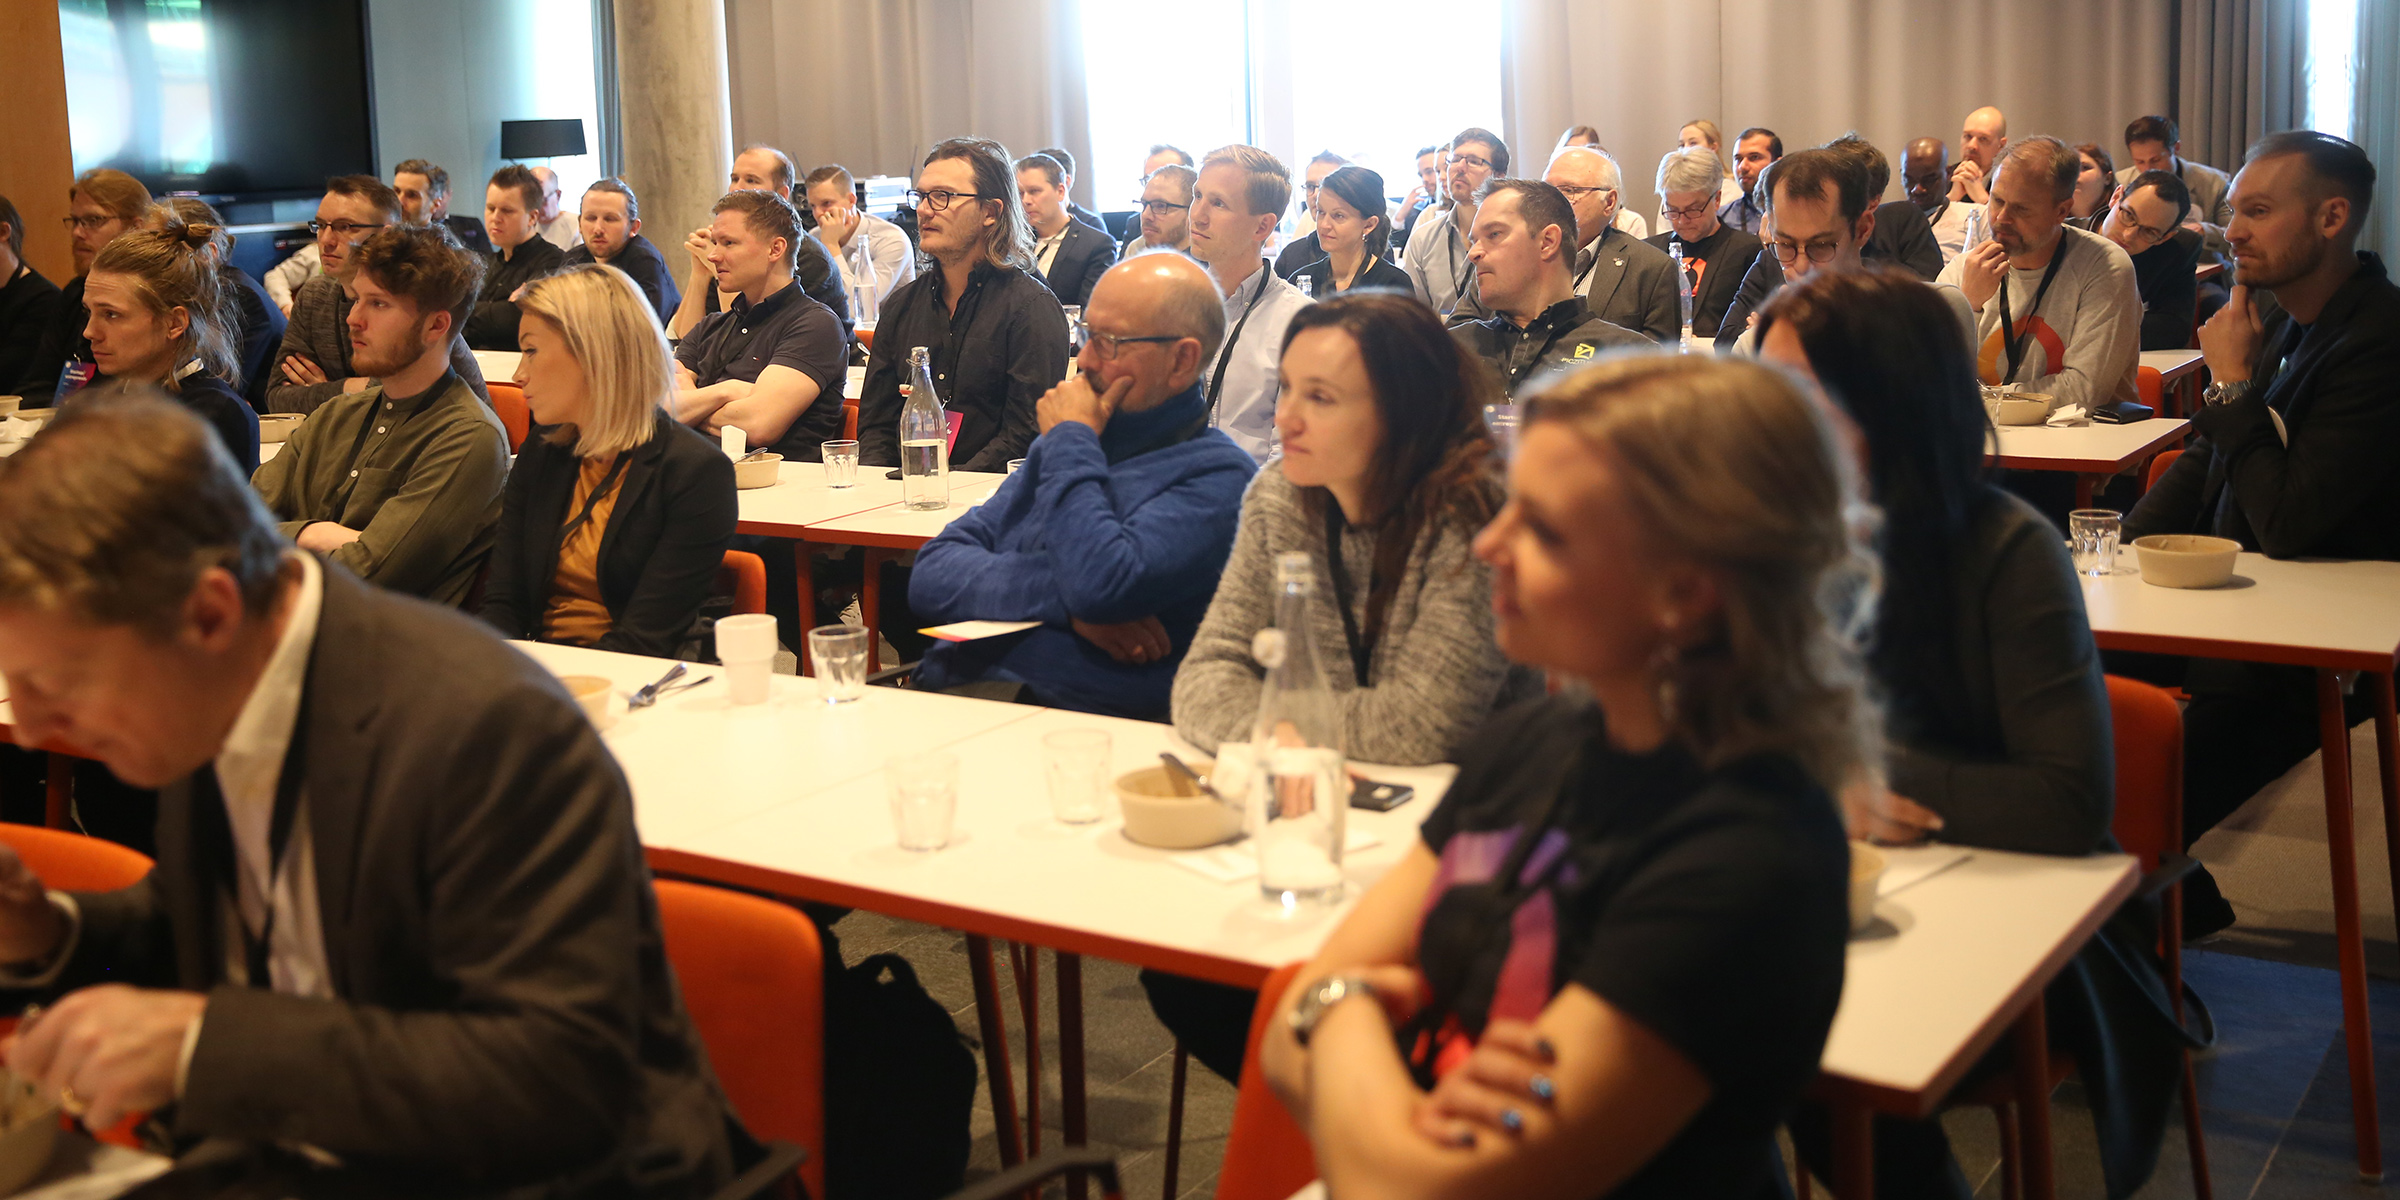 The investors takeaways was of high interest for the participants.